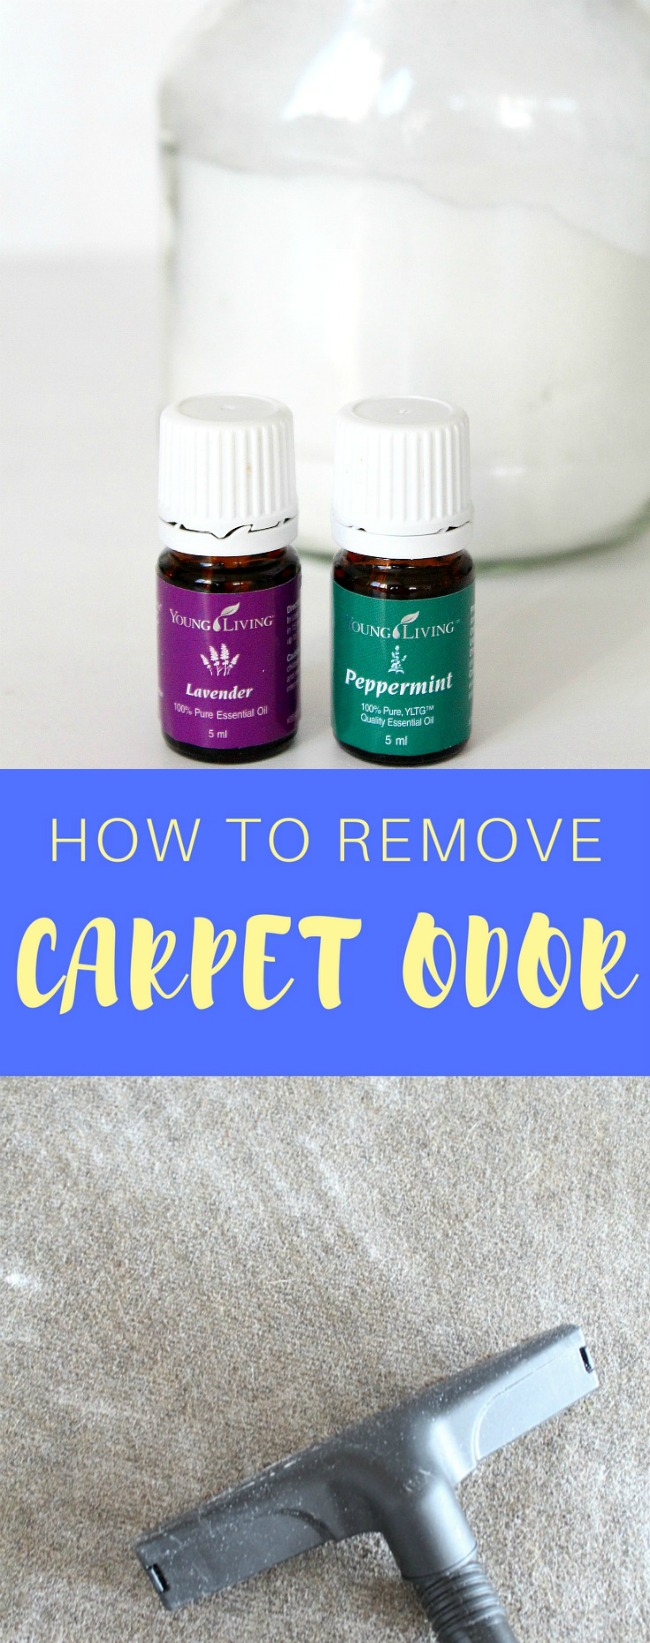 How to remove carpet odor